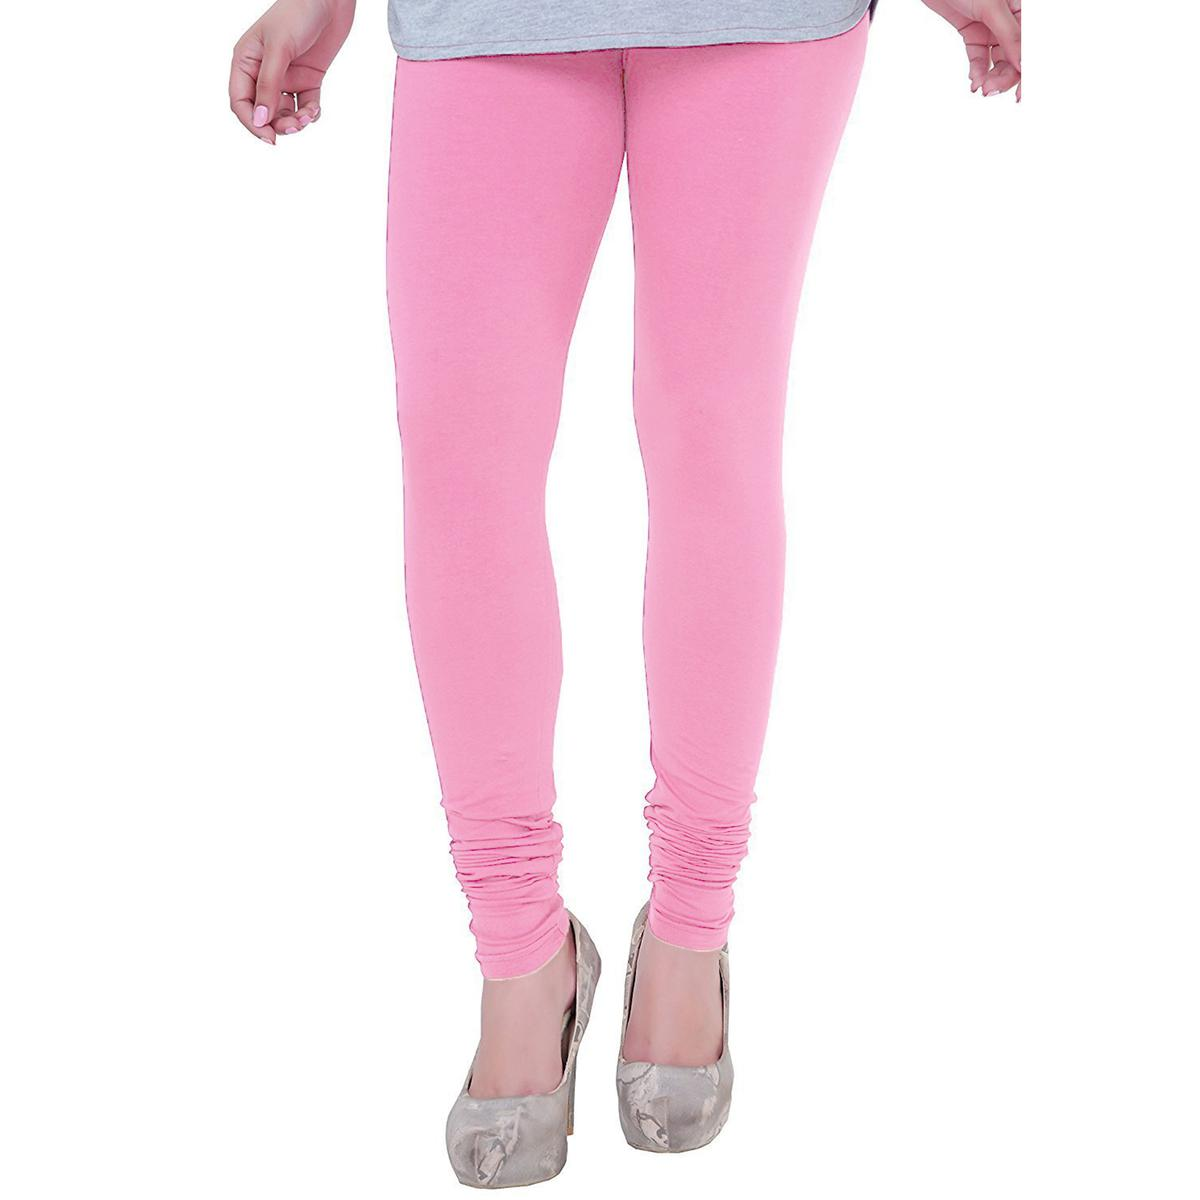 547c5a47605b2a Buy Girly Light Pink Colored Casual Wear Churidar Leggings for womens online  India, Best Prices, Reviews - Peachmode